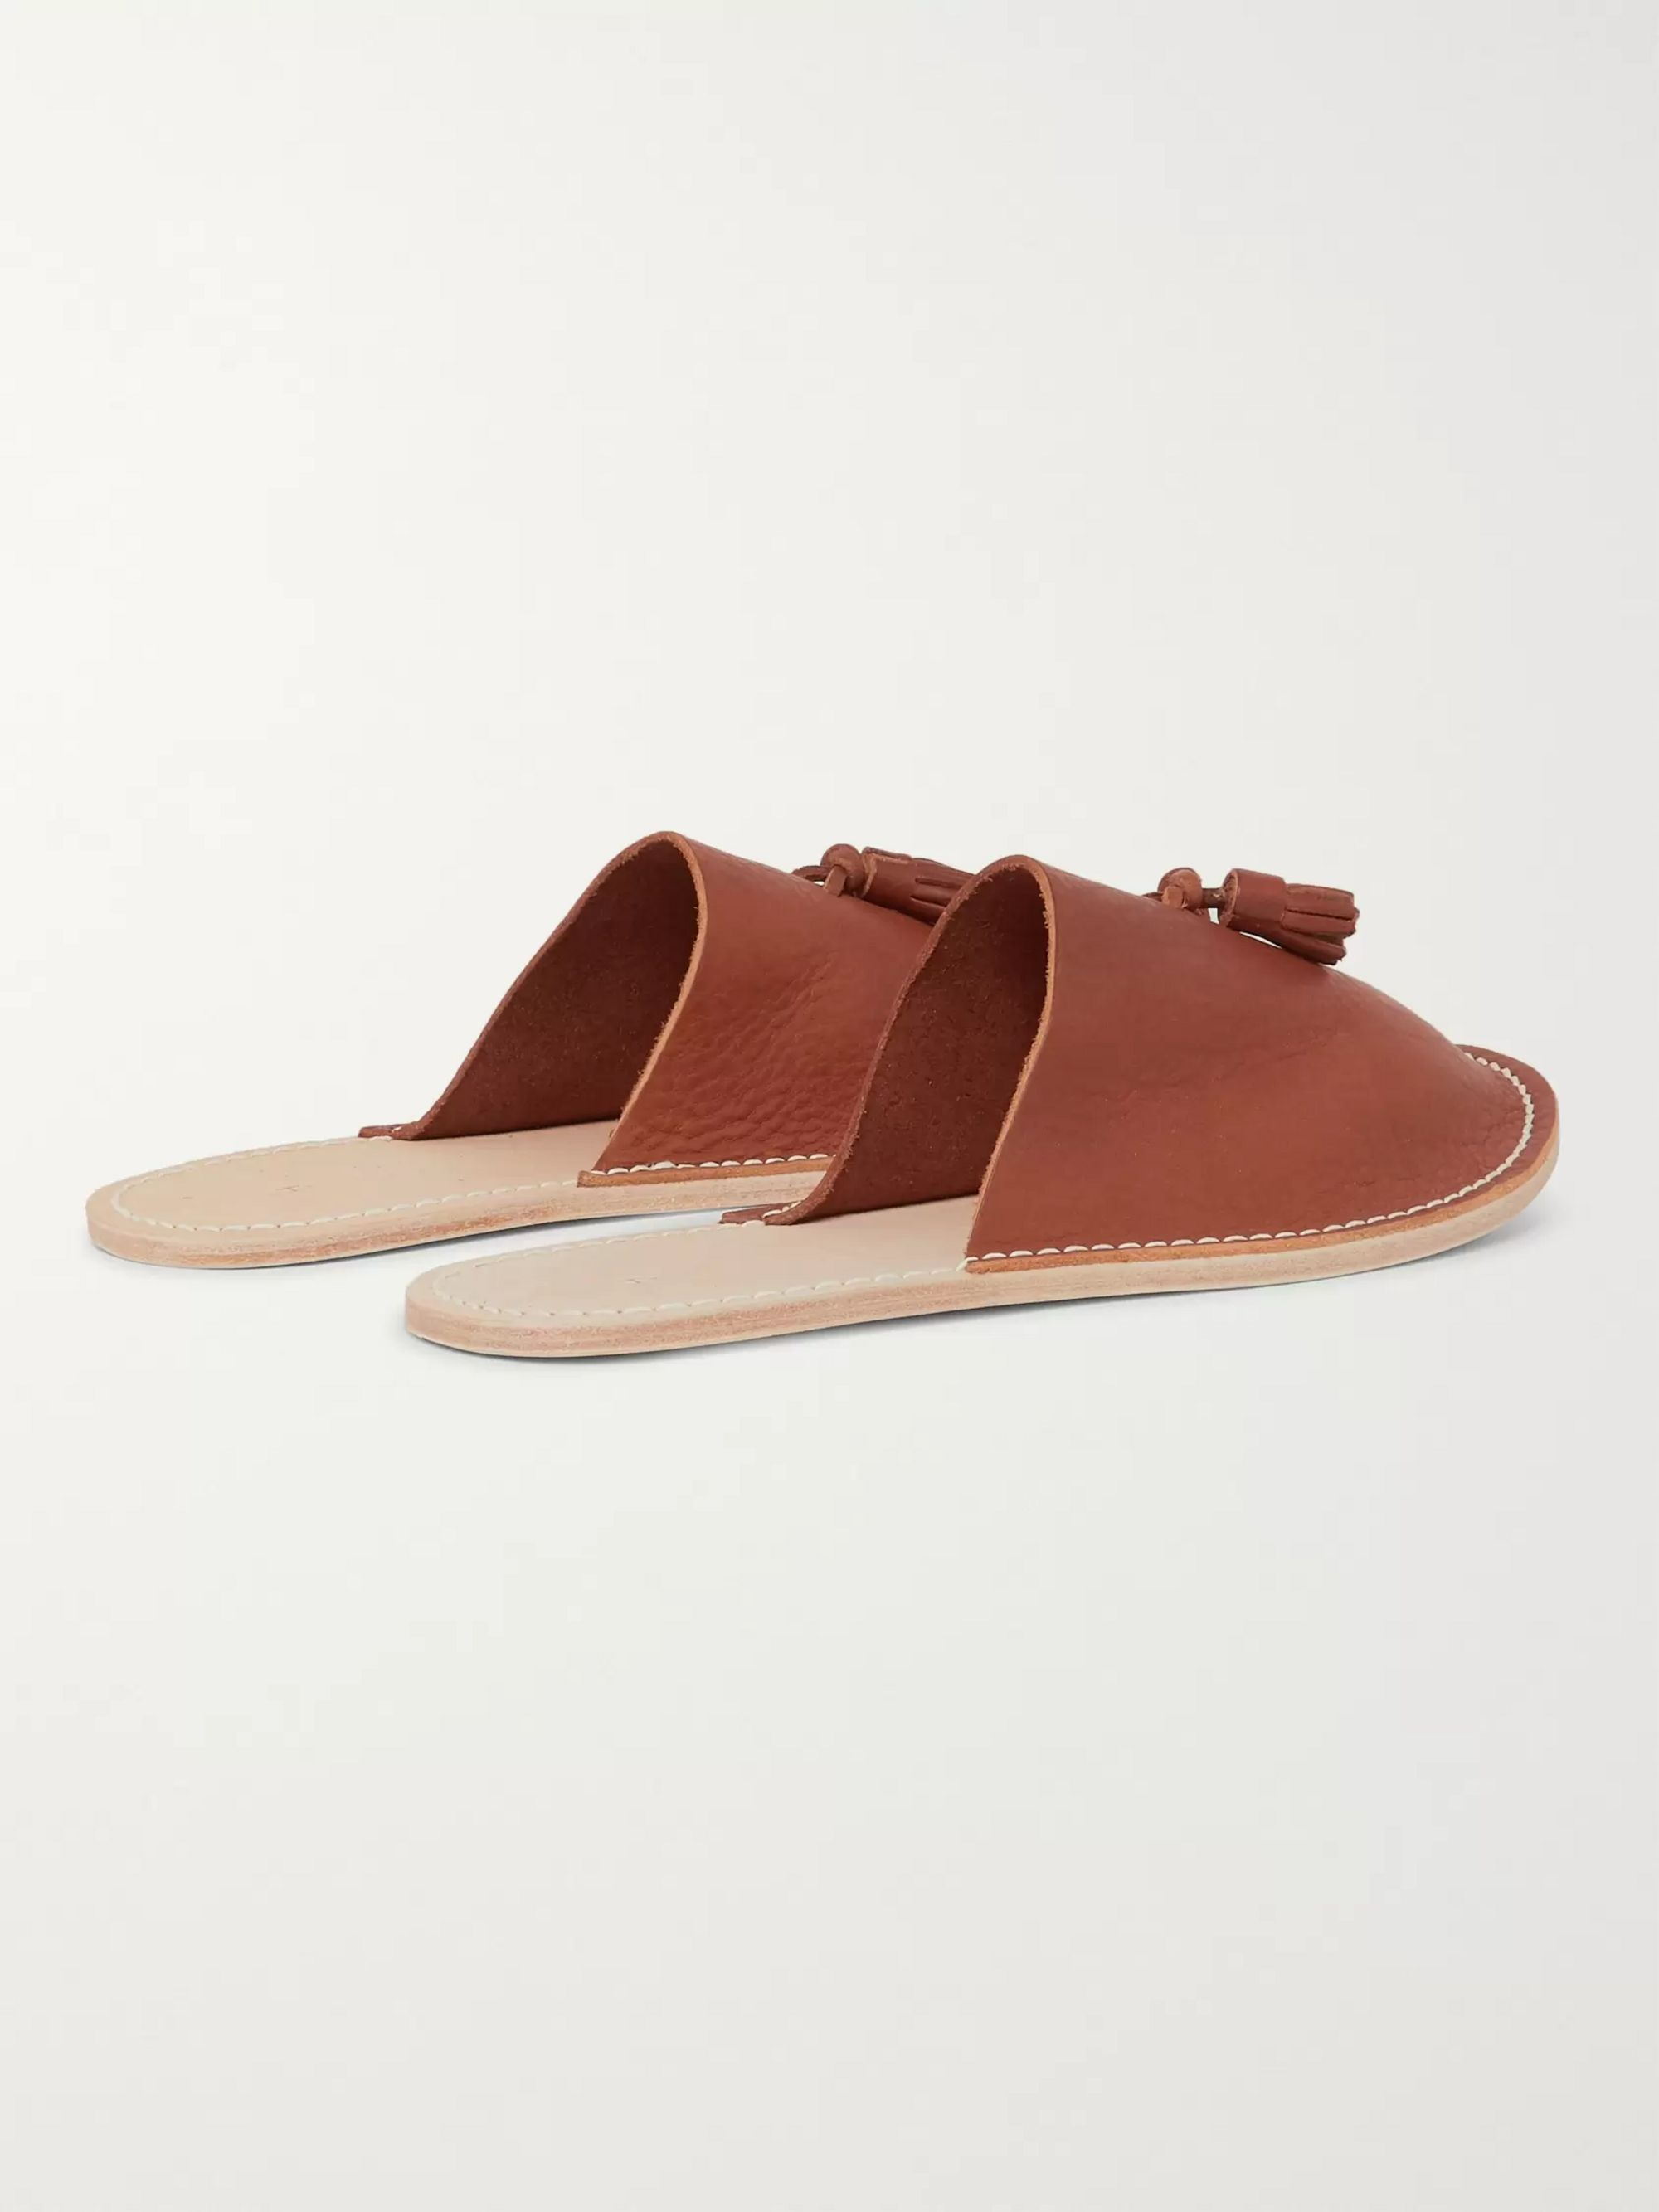 Hender Scheme Tasselled Textured-Leather Backless Slippers